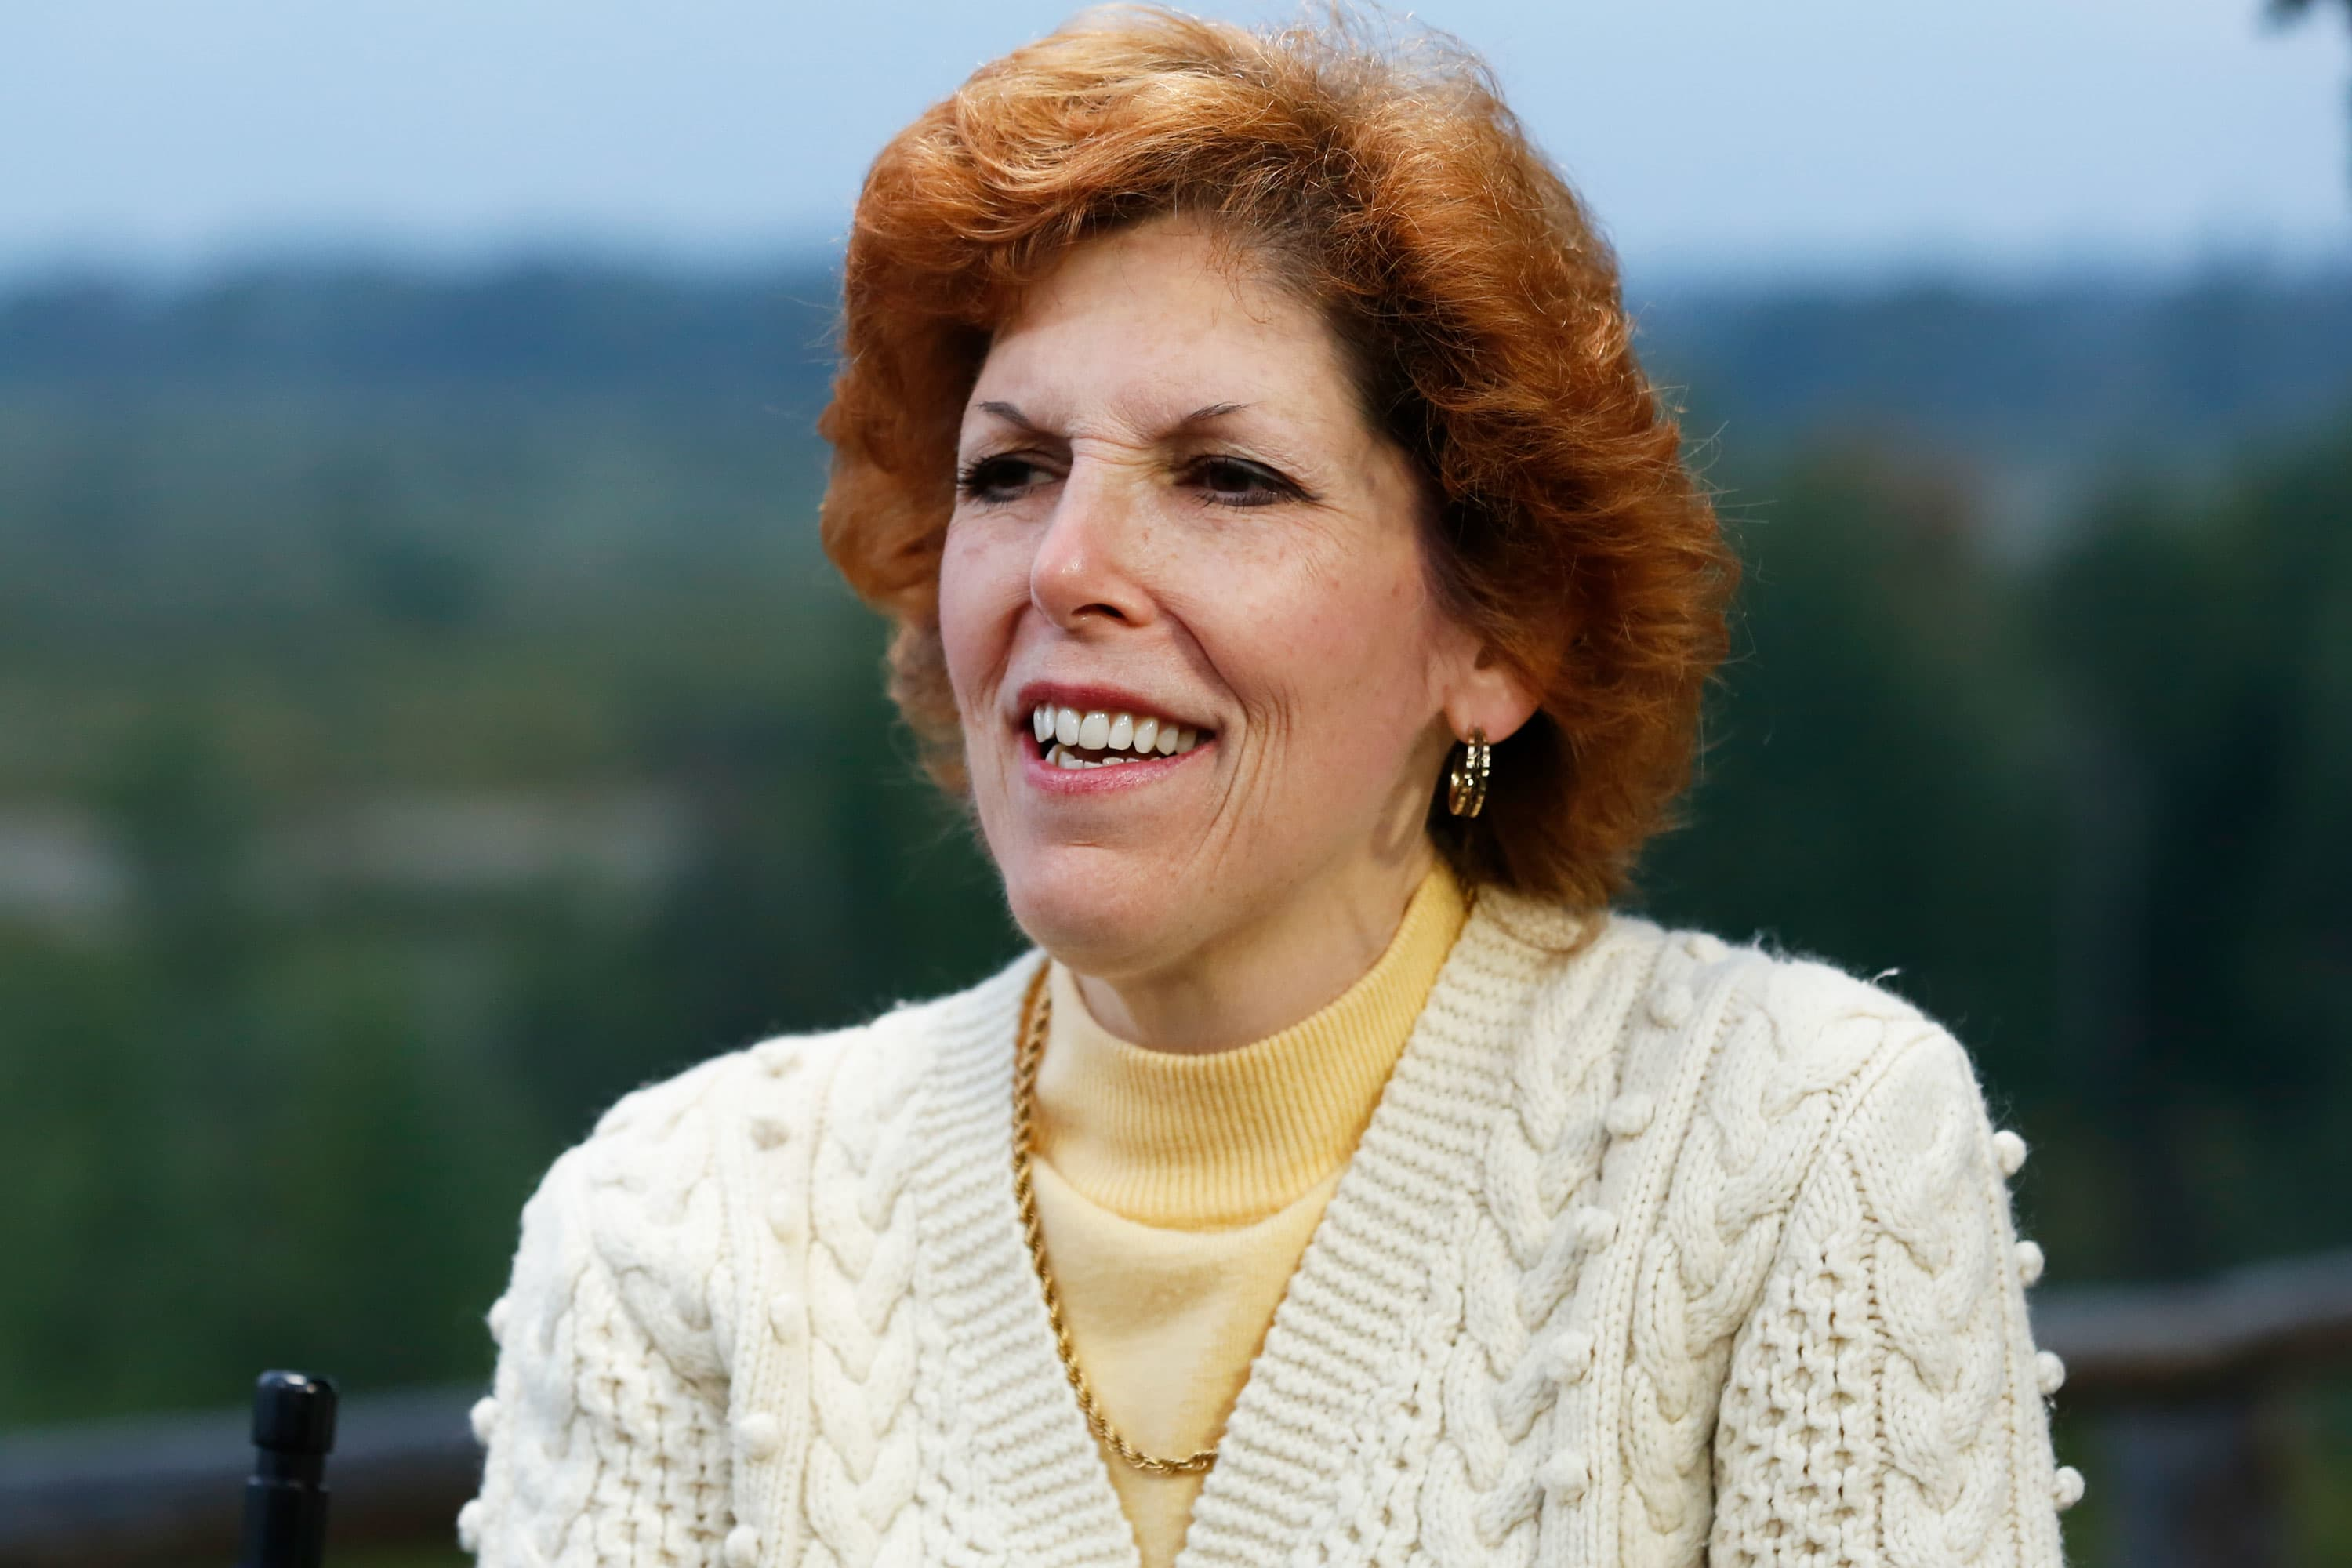 Loretta Mester says consumers are holding up the economy, even as trade issues weigh it down